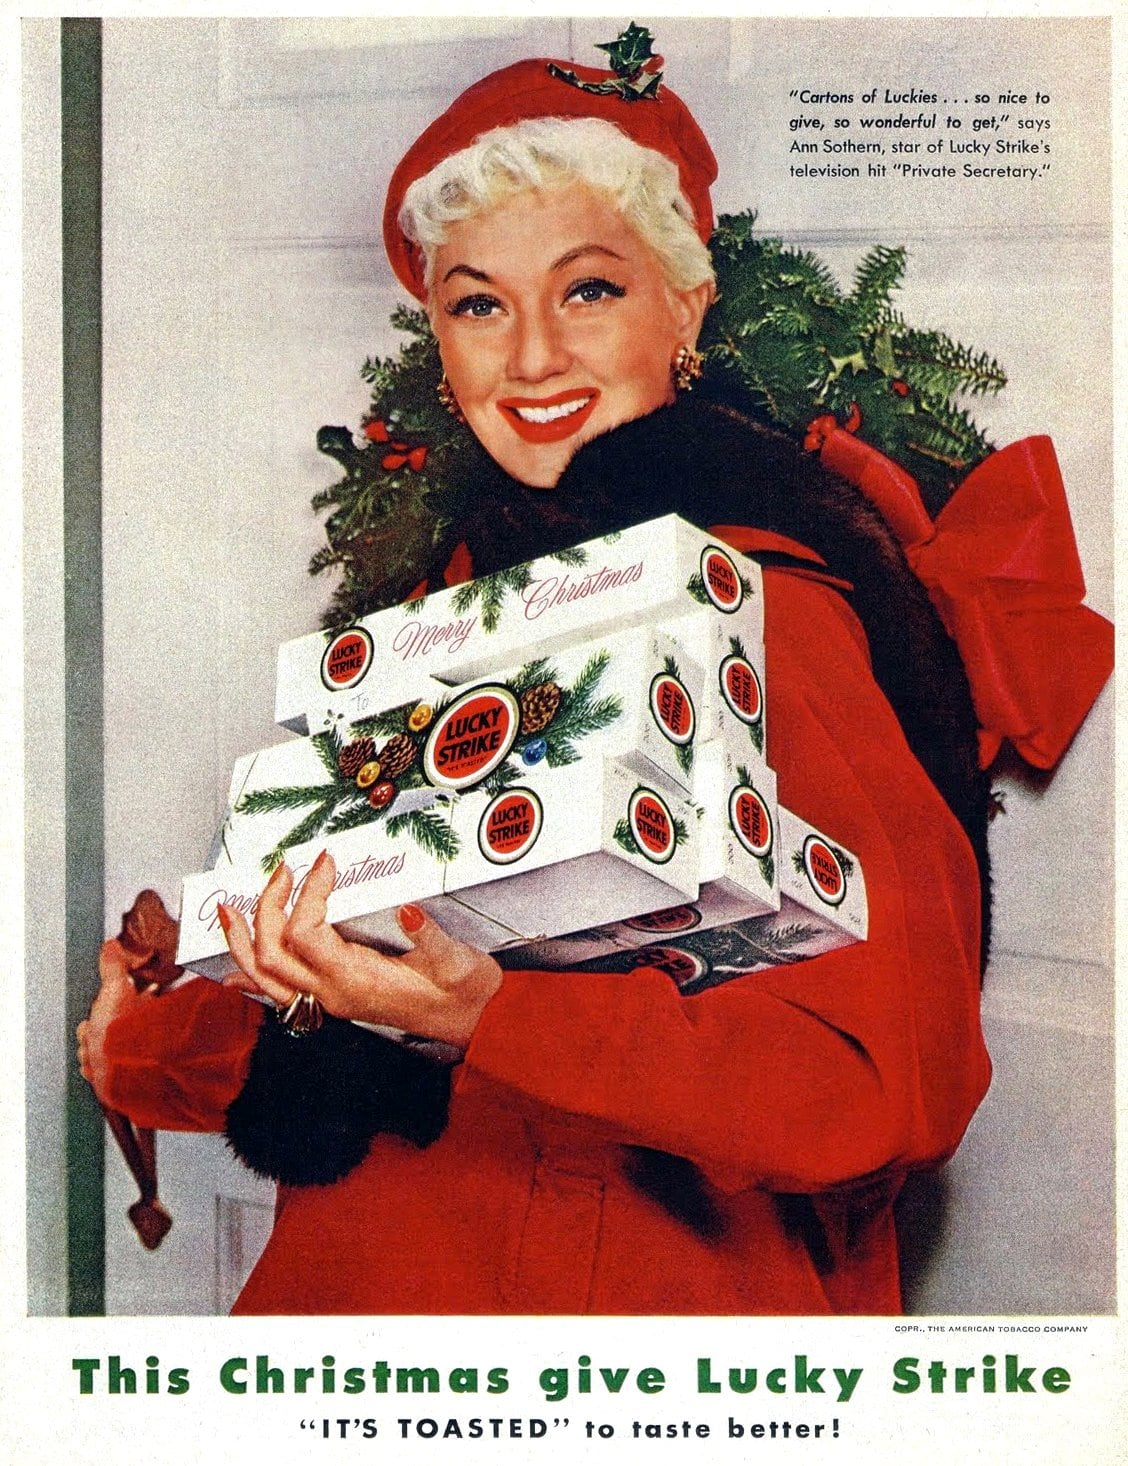 Vintage actress Ann Sothern with Christmas cigarettes (1950s)